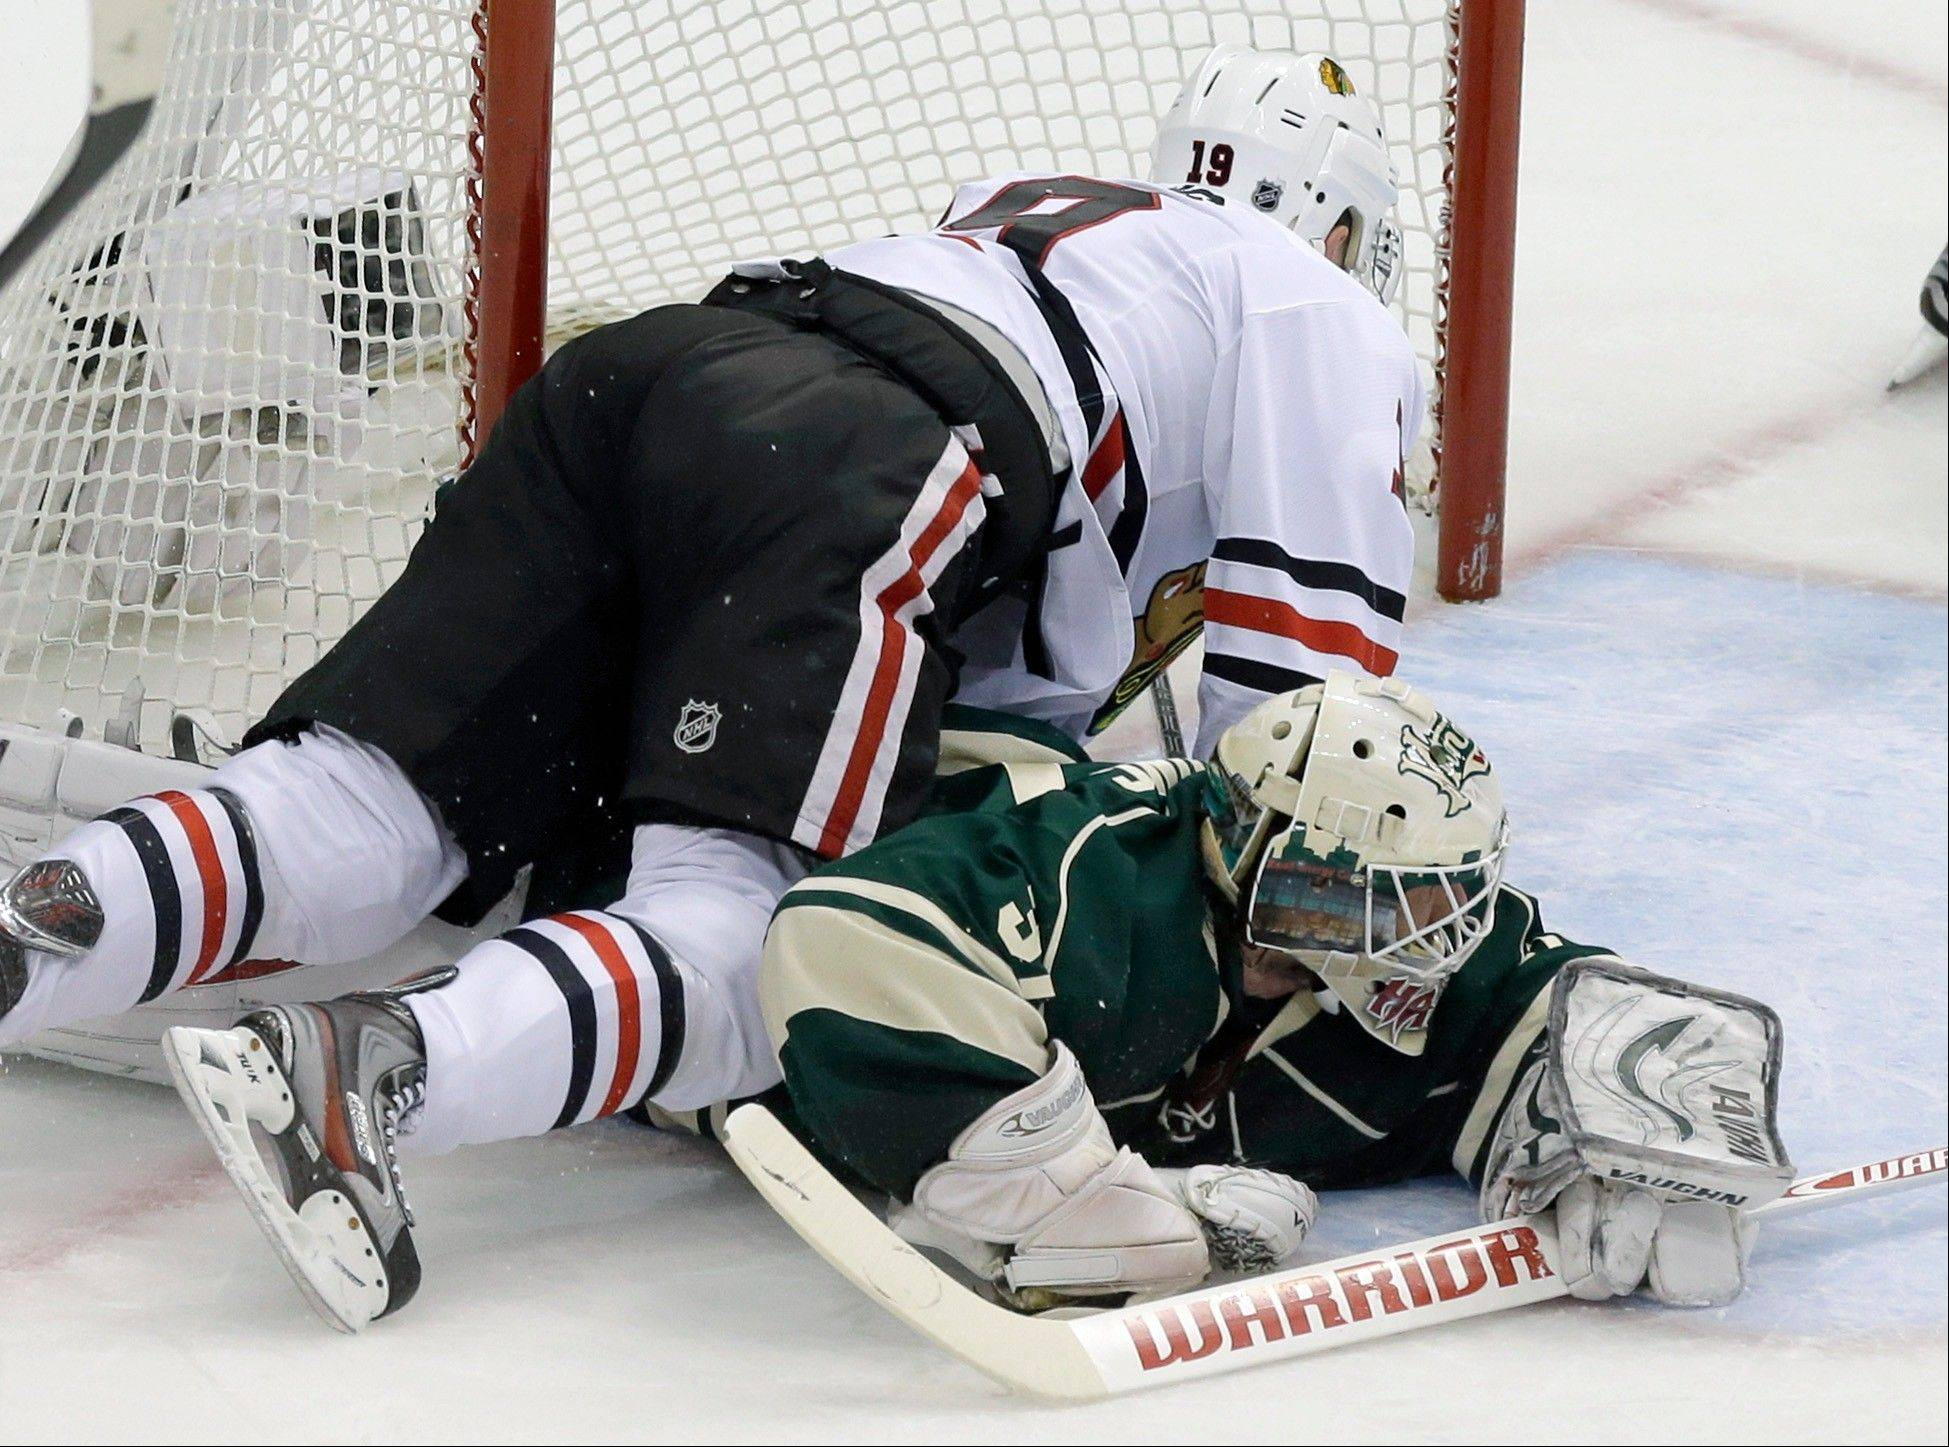 Jonathan Toews, left, falls on Minnesota Wild goalie Josh Harding as Harding stoped a shot by Toews in the first period of Game 4 of an NHL hockey Stanley Cup playoff series, Tuesday, May 7, 2013 in St. Paul, Minn. Harding was injured on the play and left the game after the first period.